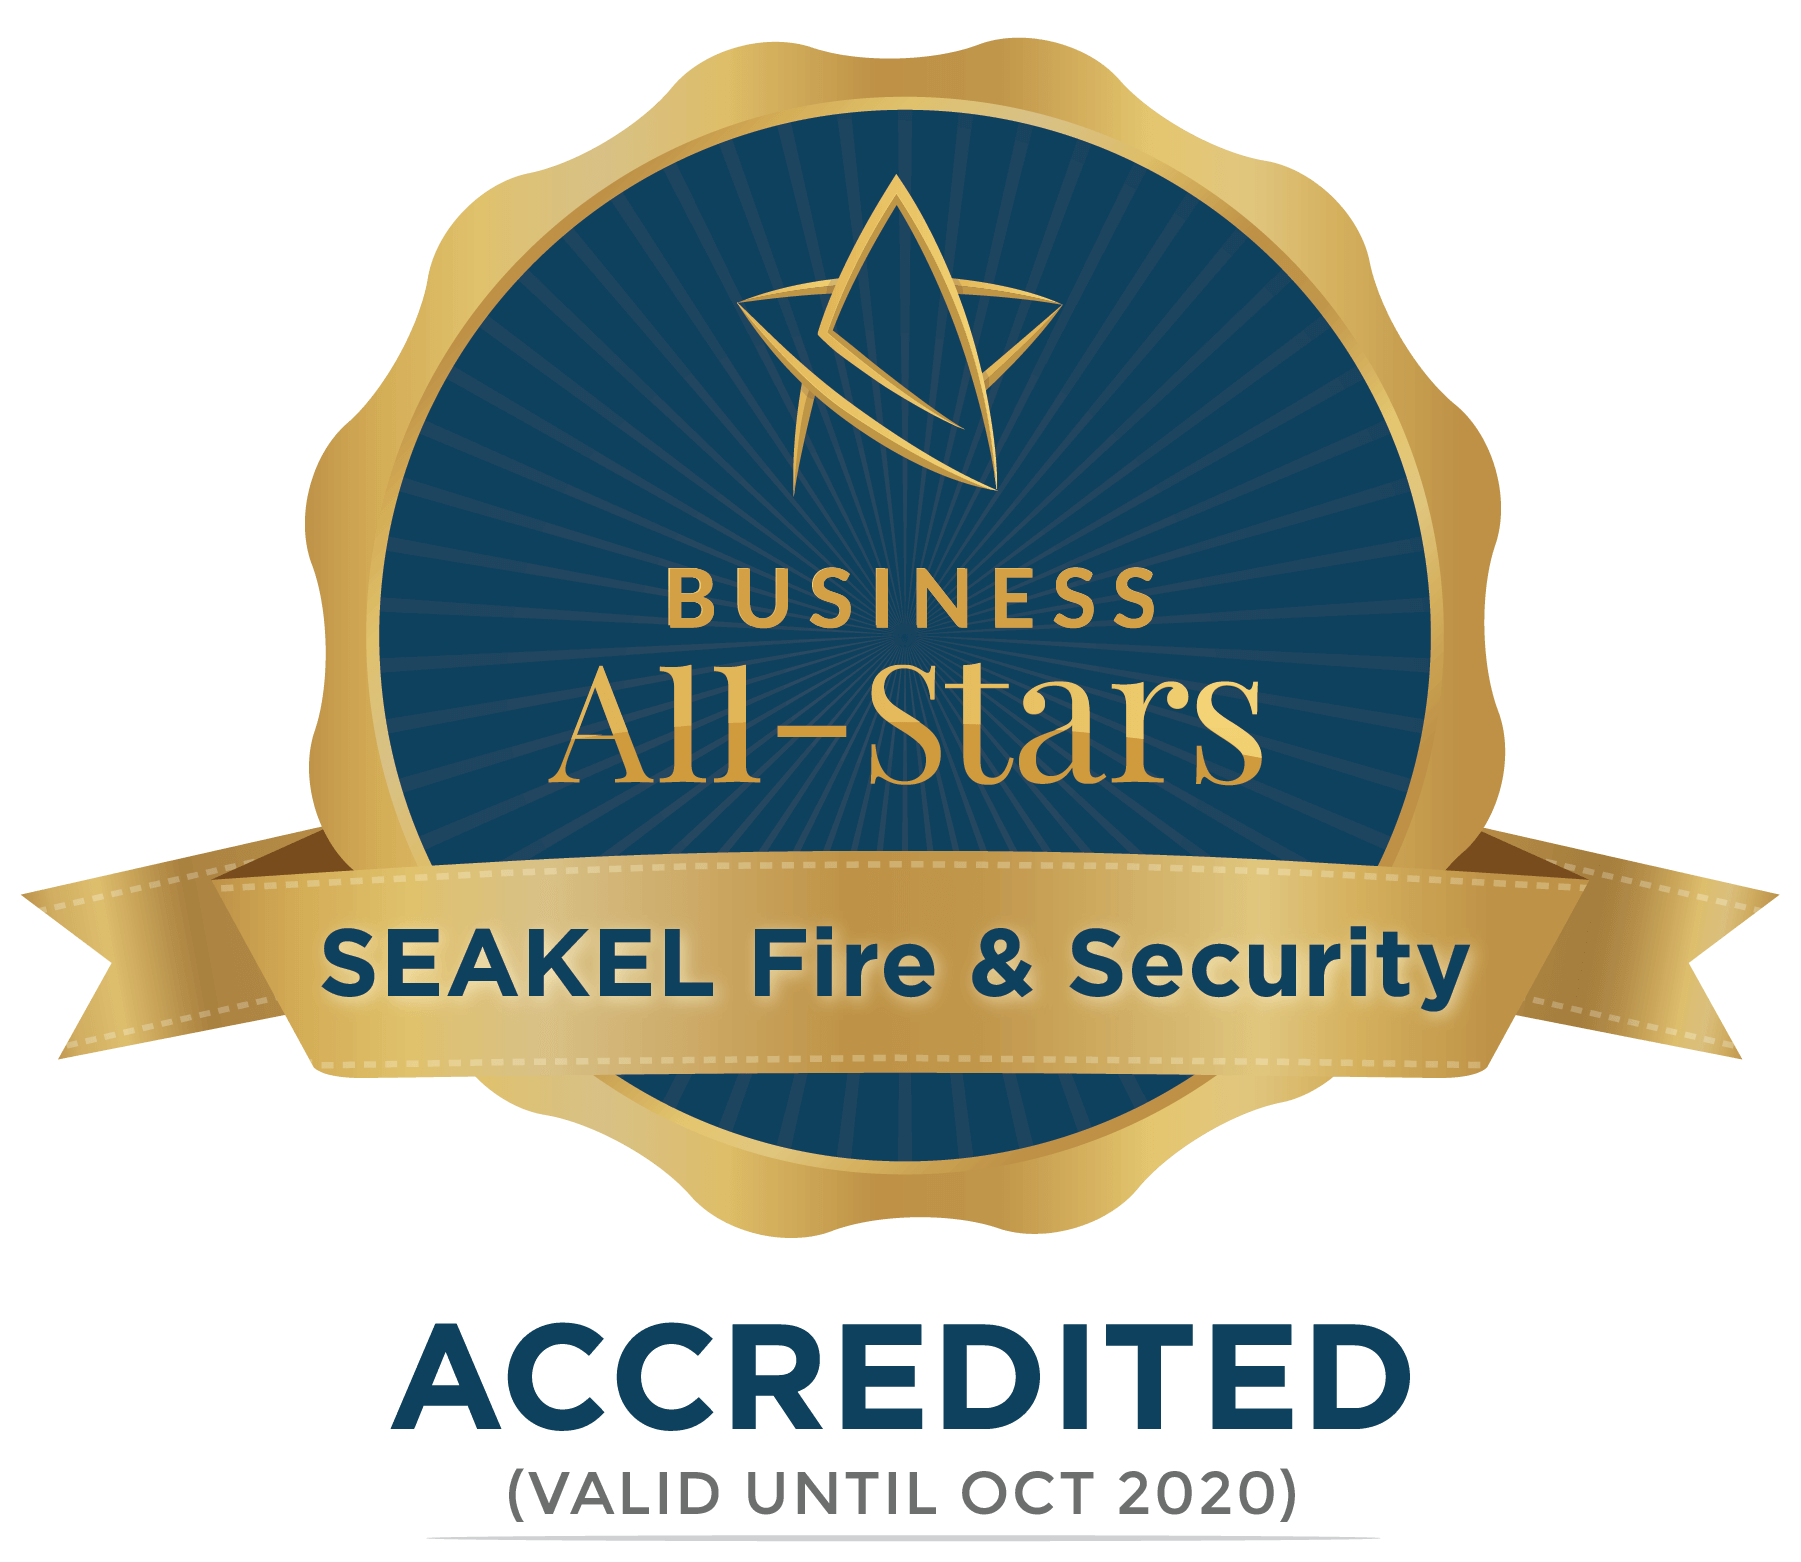 SEAKEL Fire & Security - Business All-Stars Accreditation